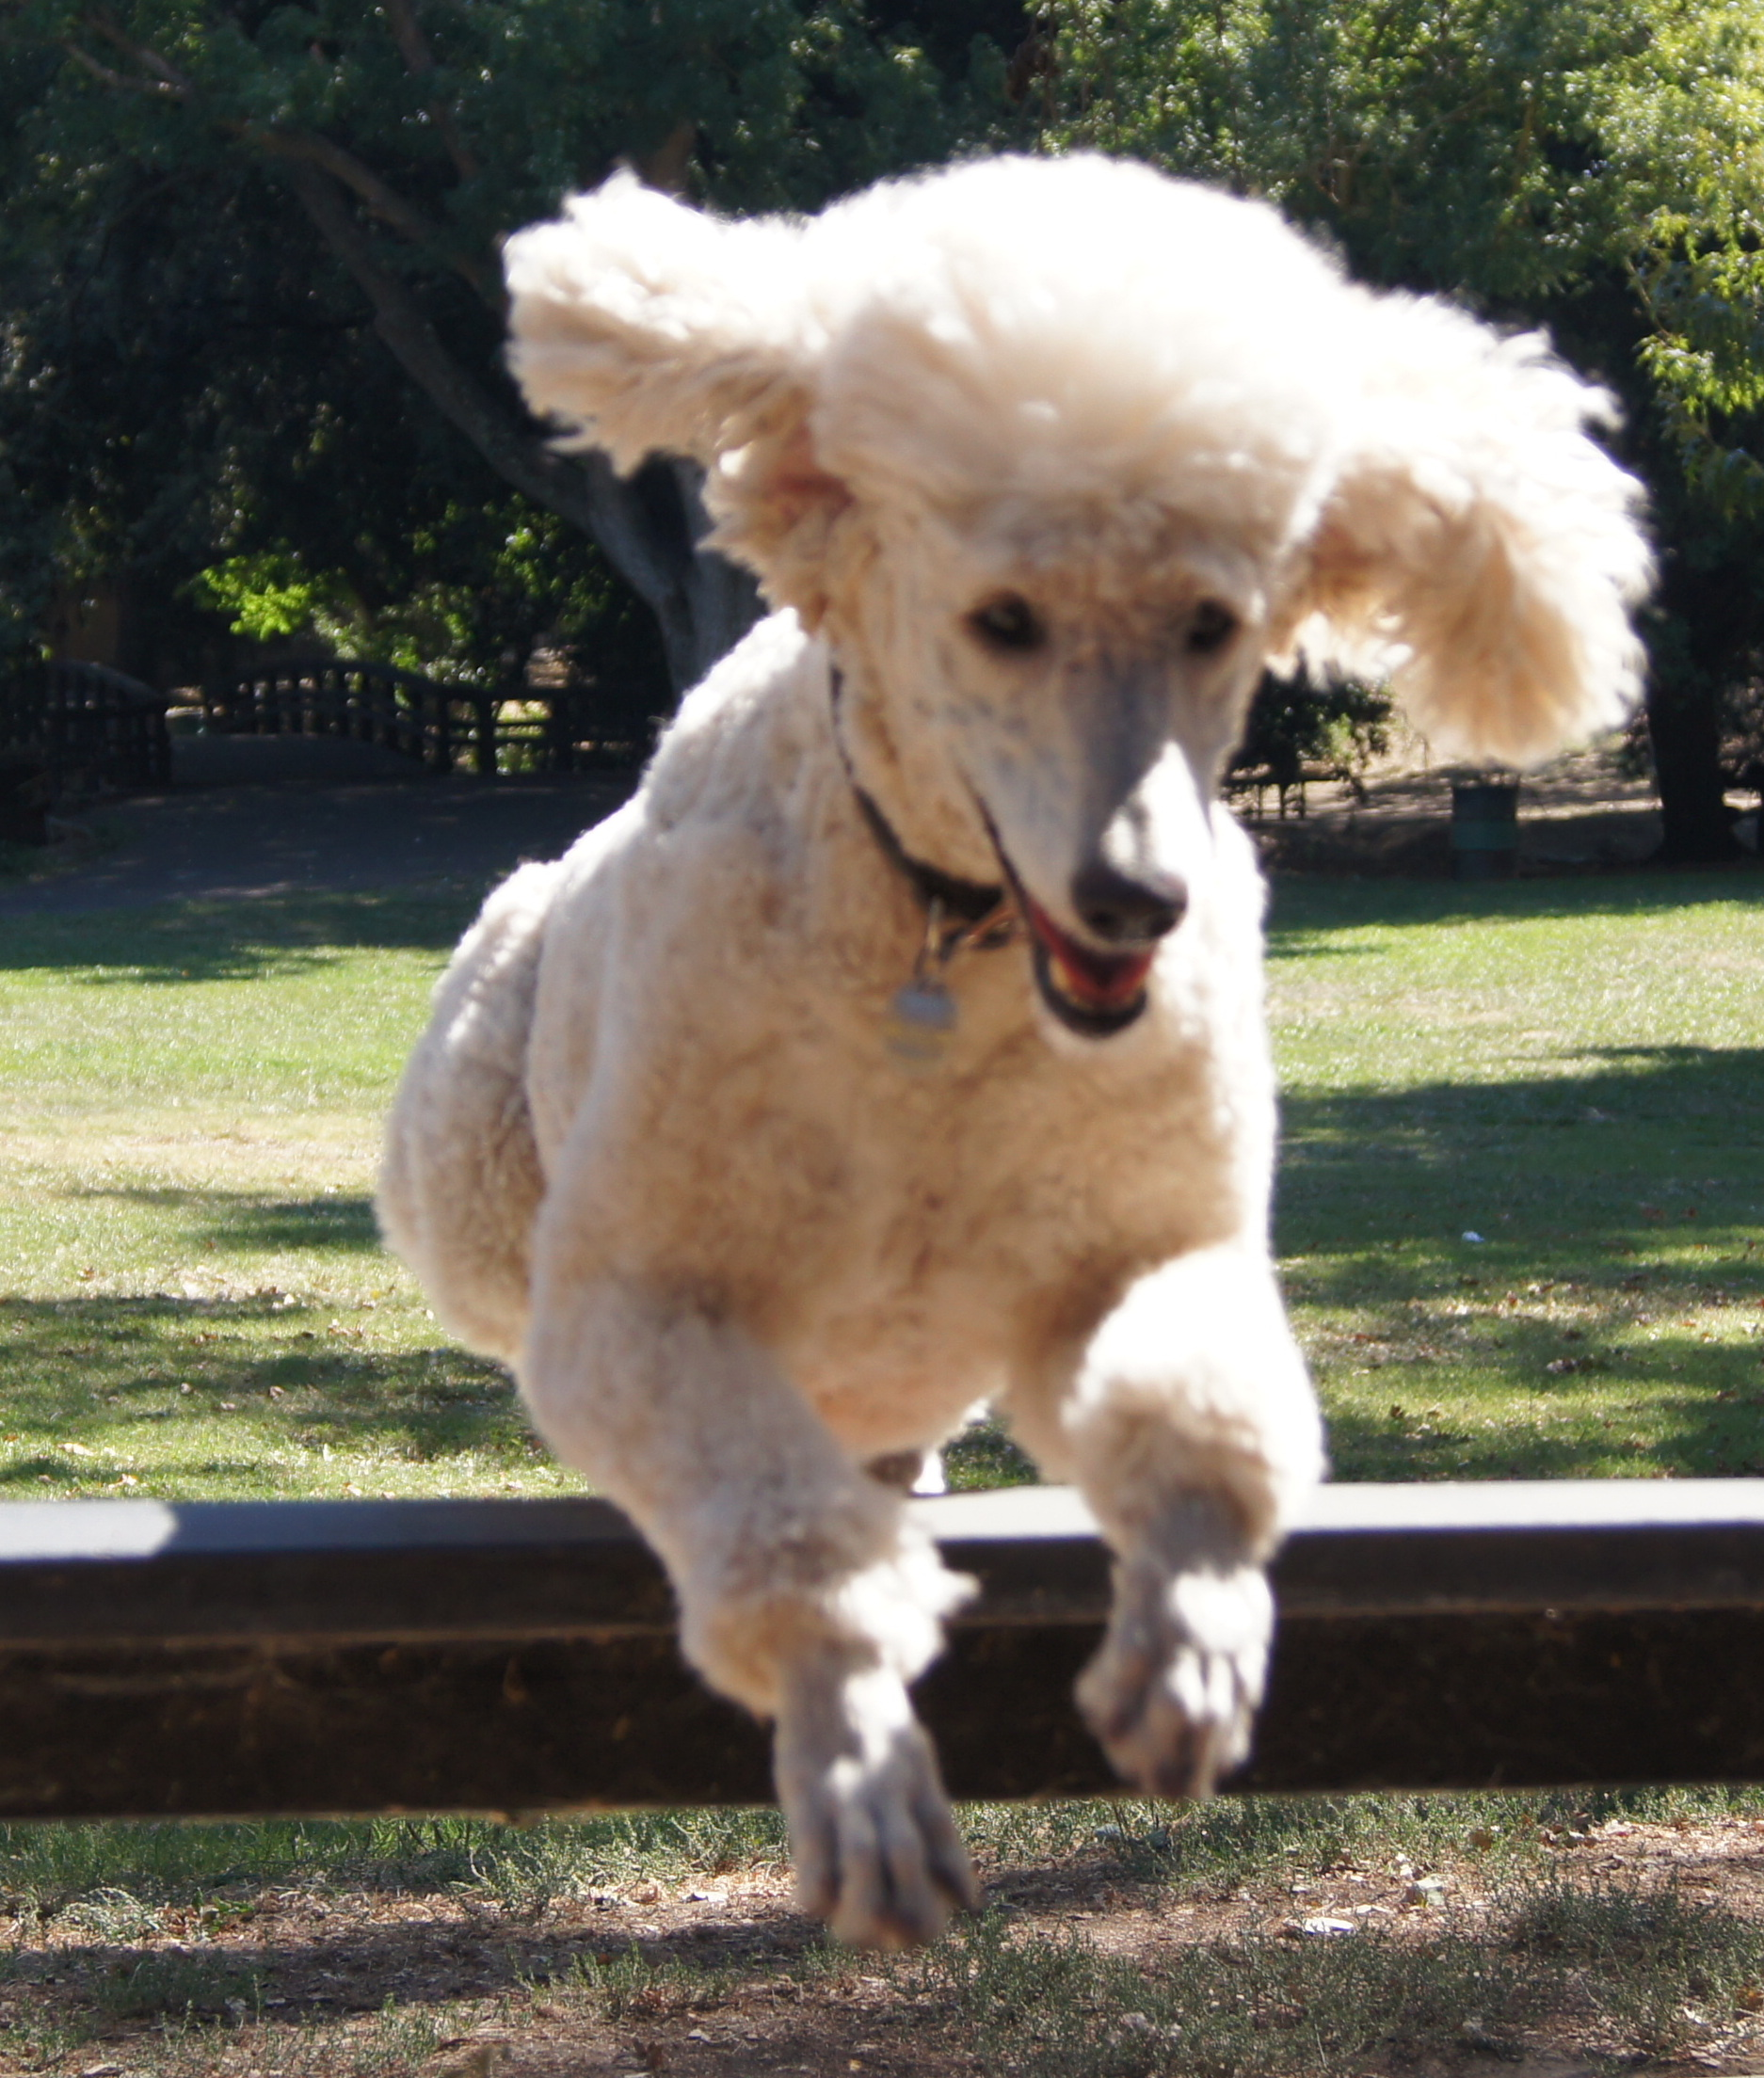 Bobo jumping a fence at the park where I take him everyday.  2010